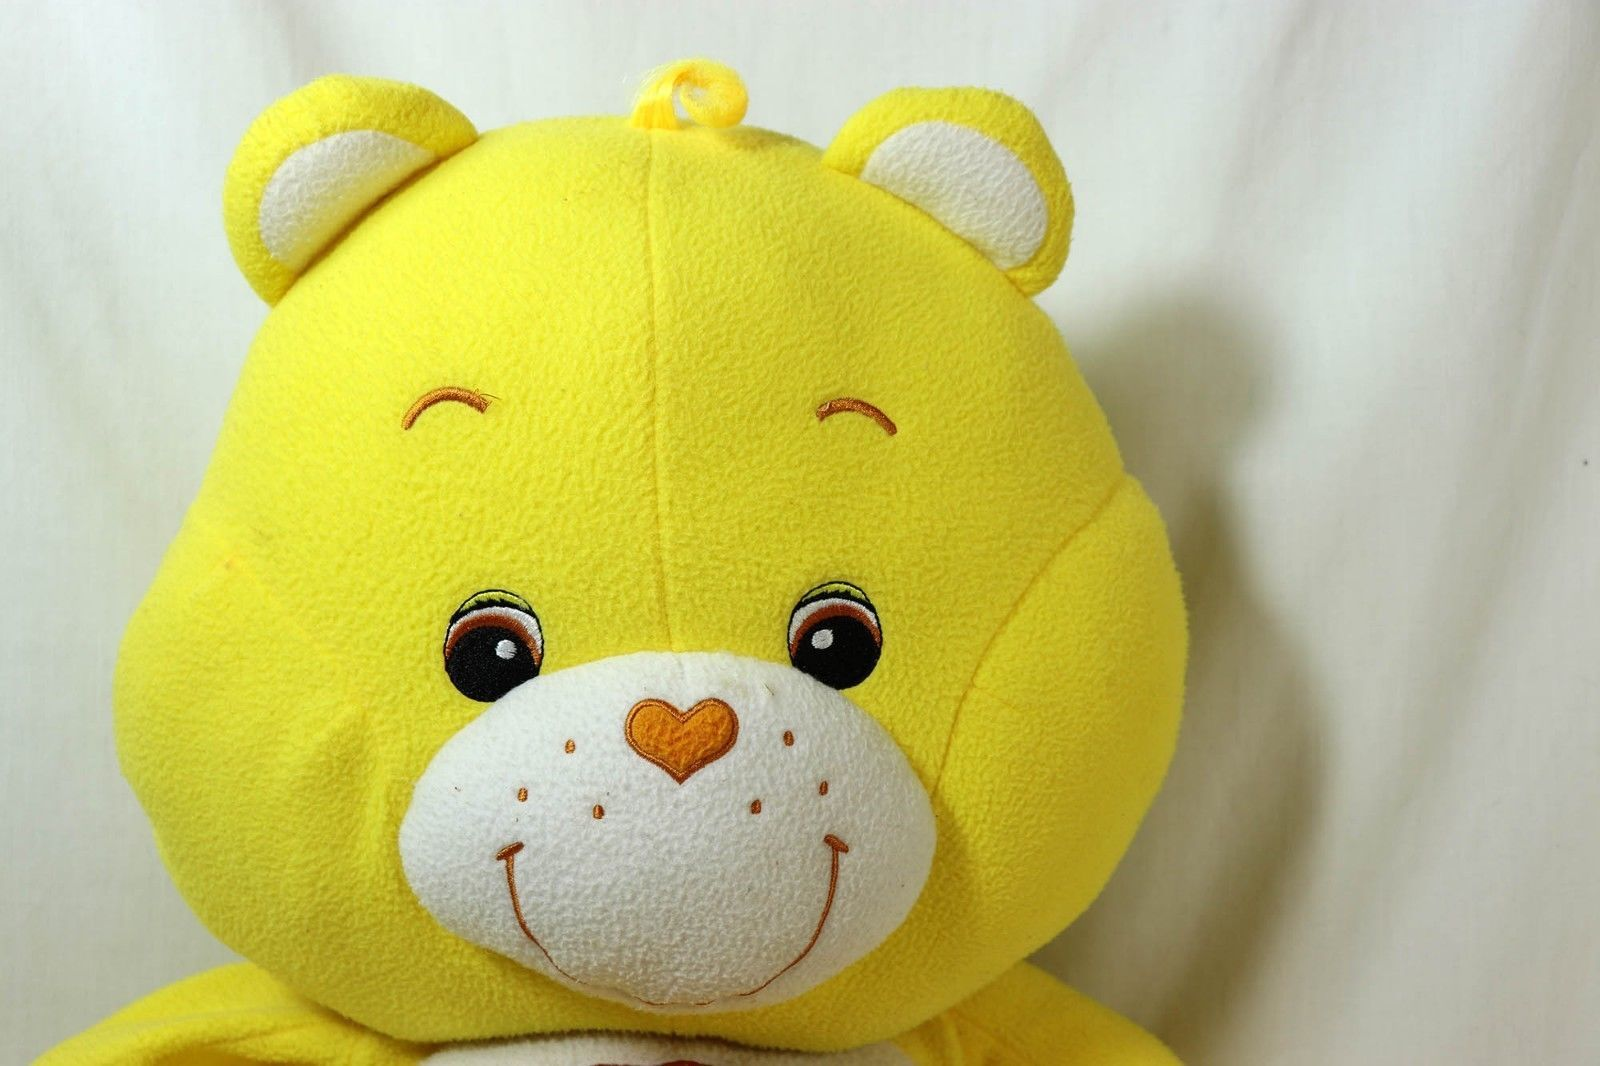 "Care Bears 26"" FunShine Sunshine Yellow Stuffed Plush Large Bear by Baby Boom"